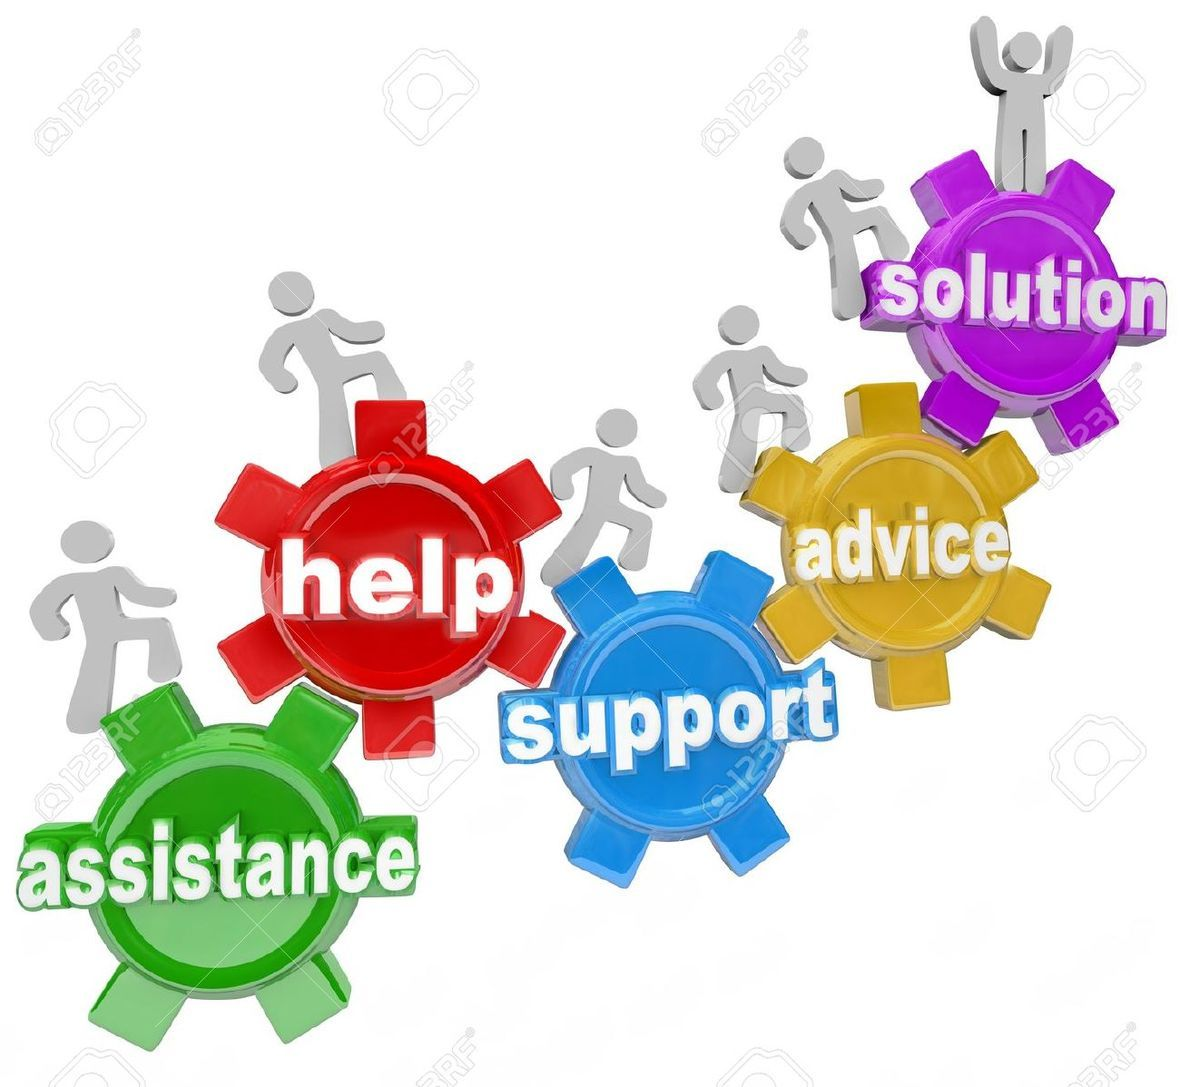 13406053-Several-people-rising-on-gears-helping-each-other-to-achieve-success-and-reach-a-solution-through-as-Stock-Photo